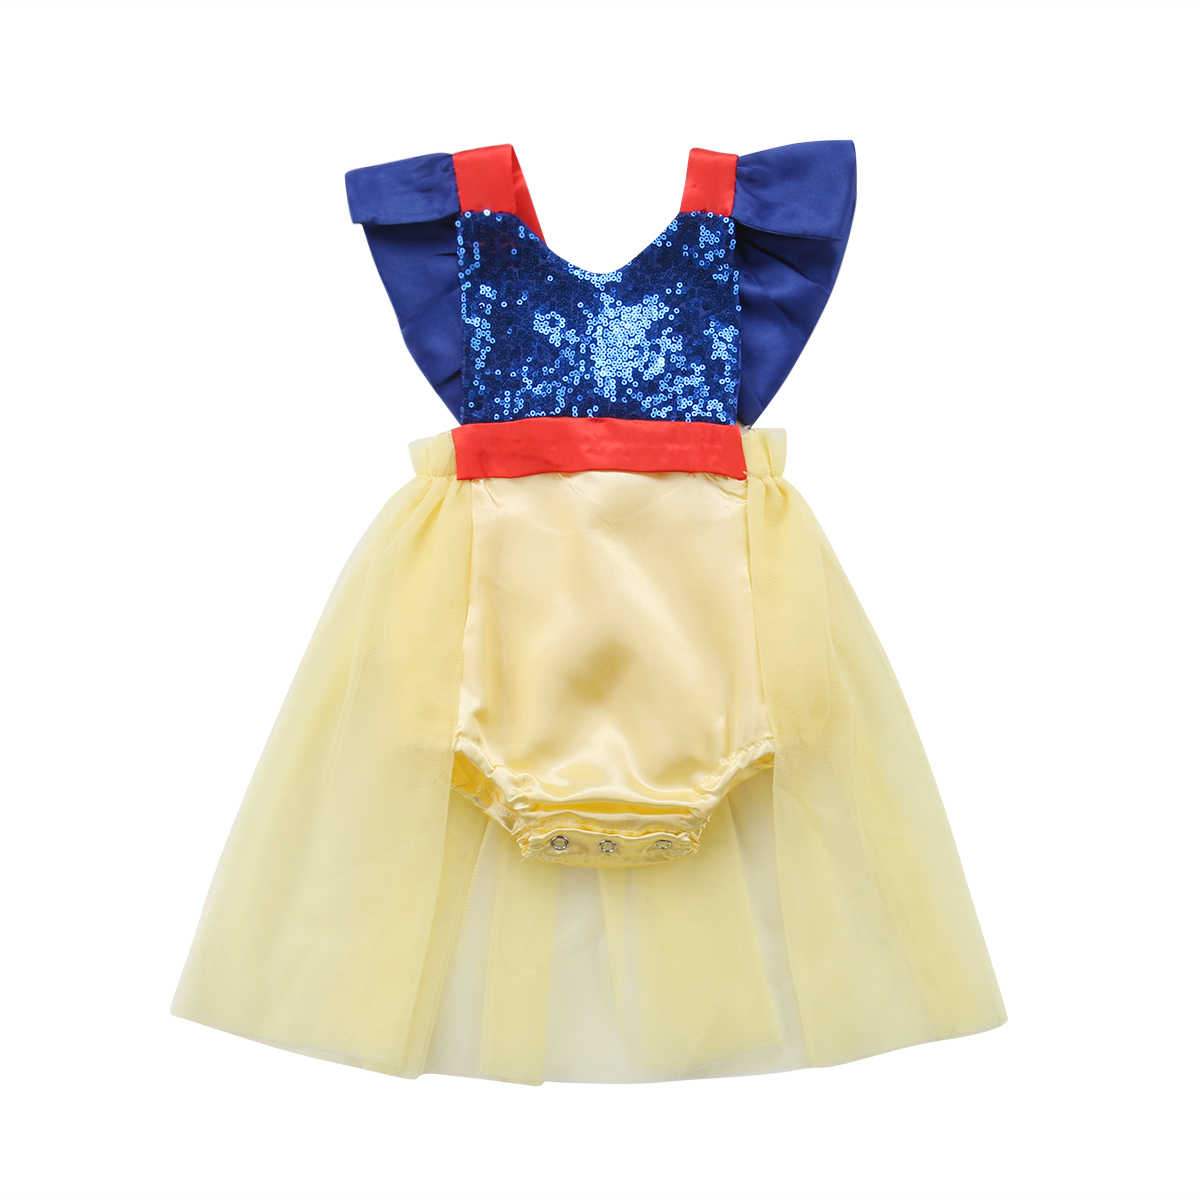 0af239fdd Detail Feedback Questions about Newborn Infant Baby Girl Tulle ...